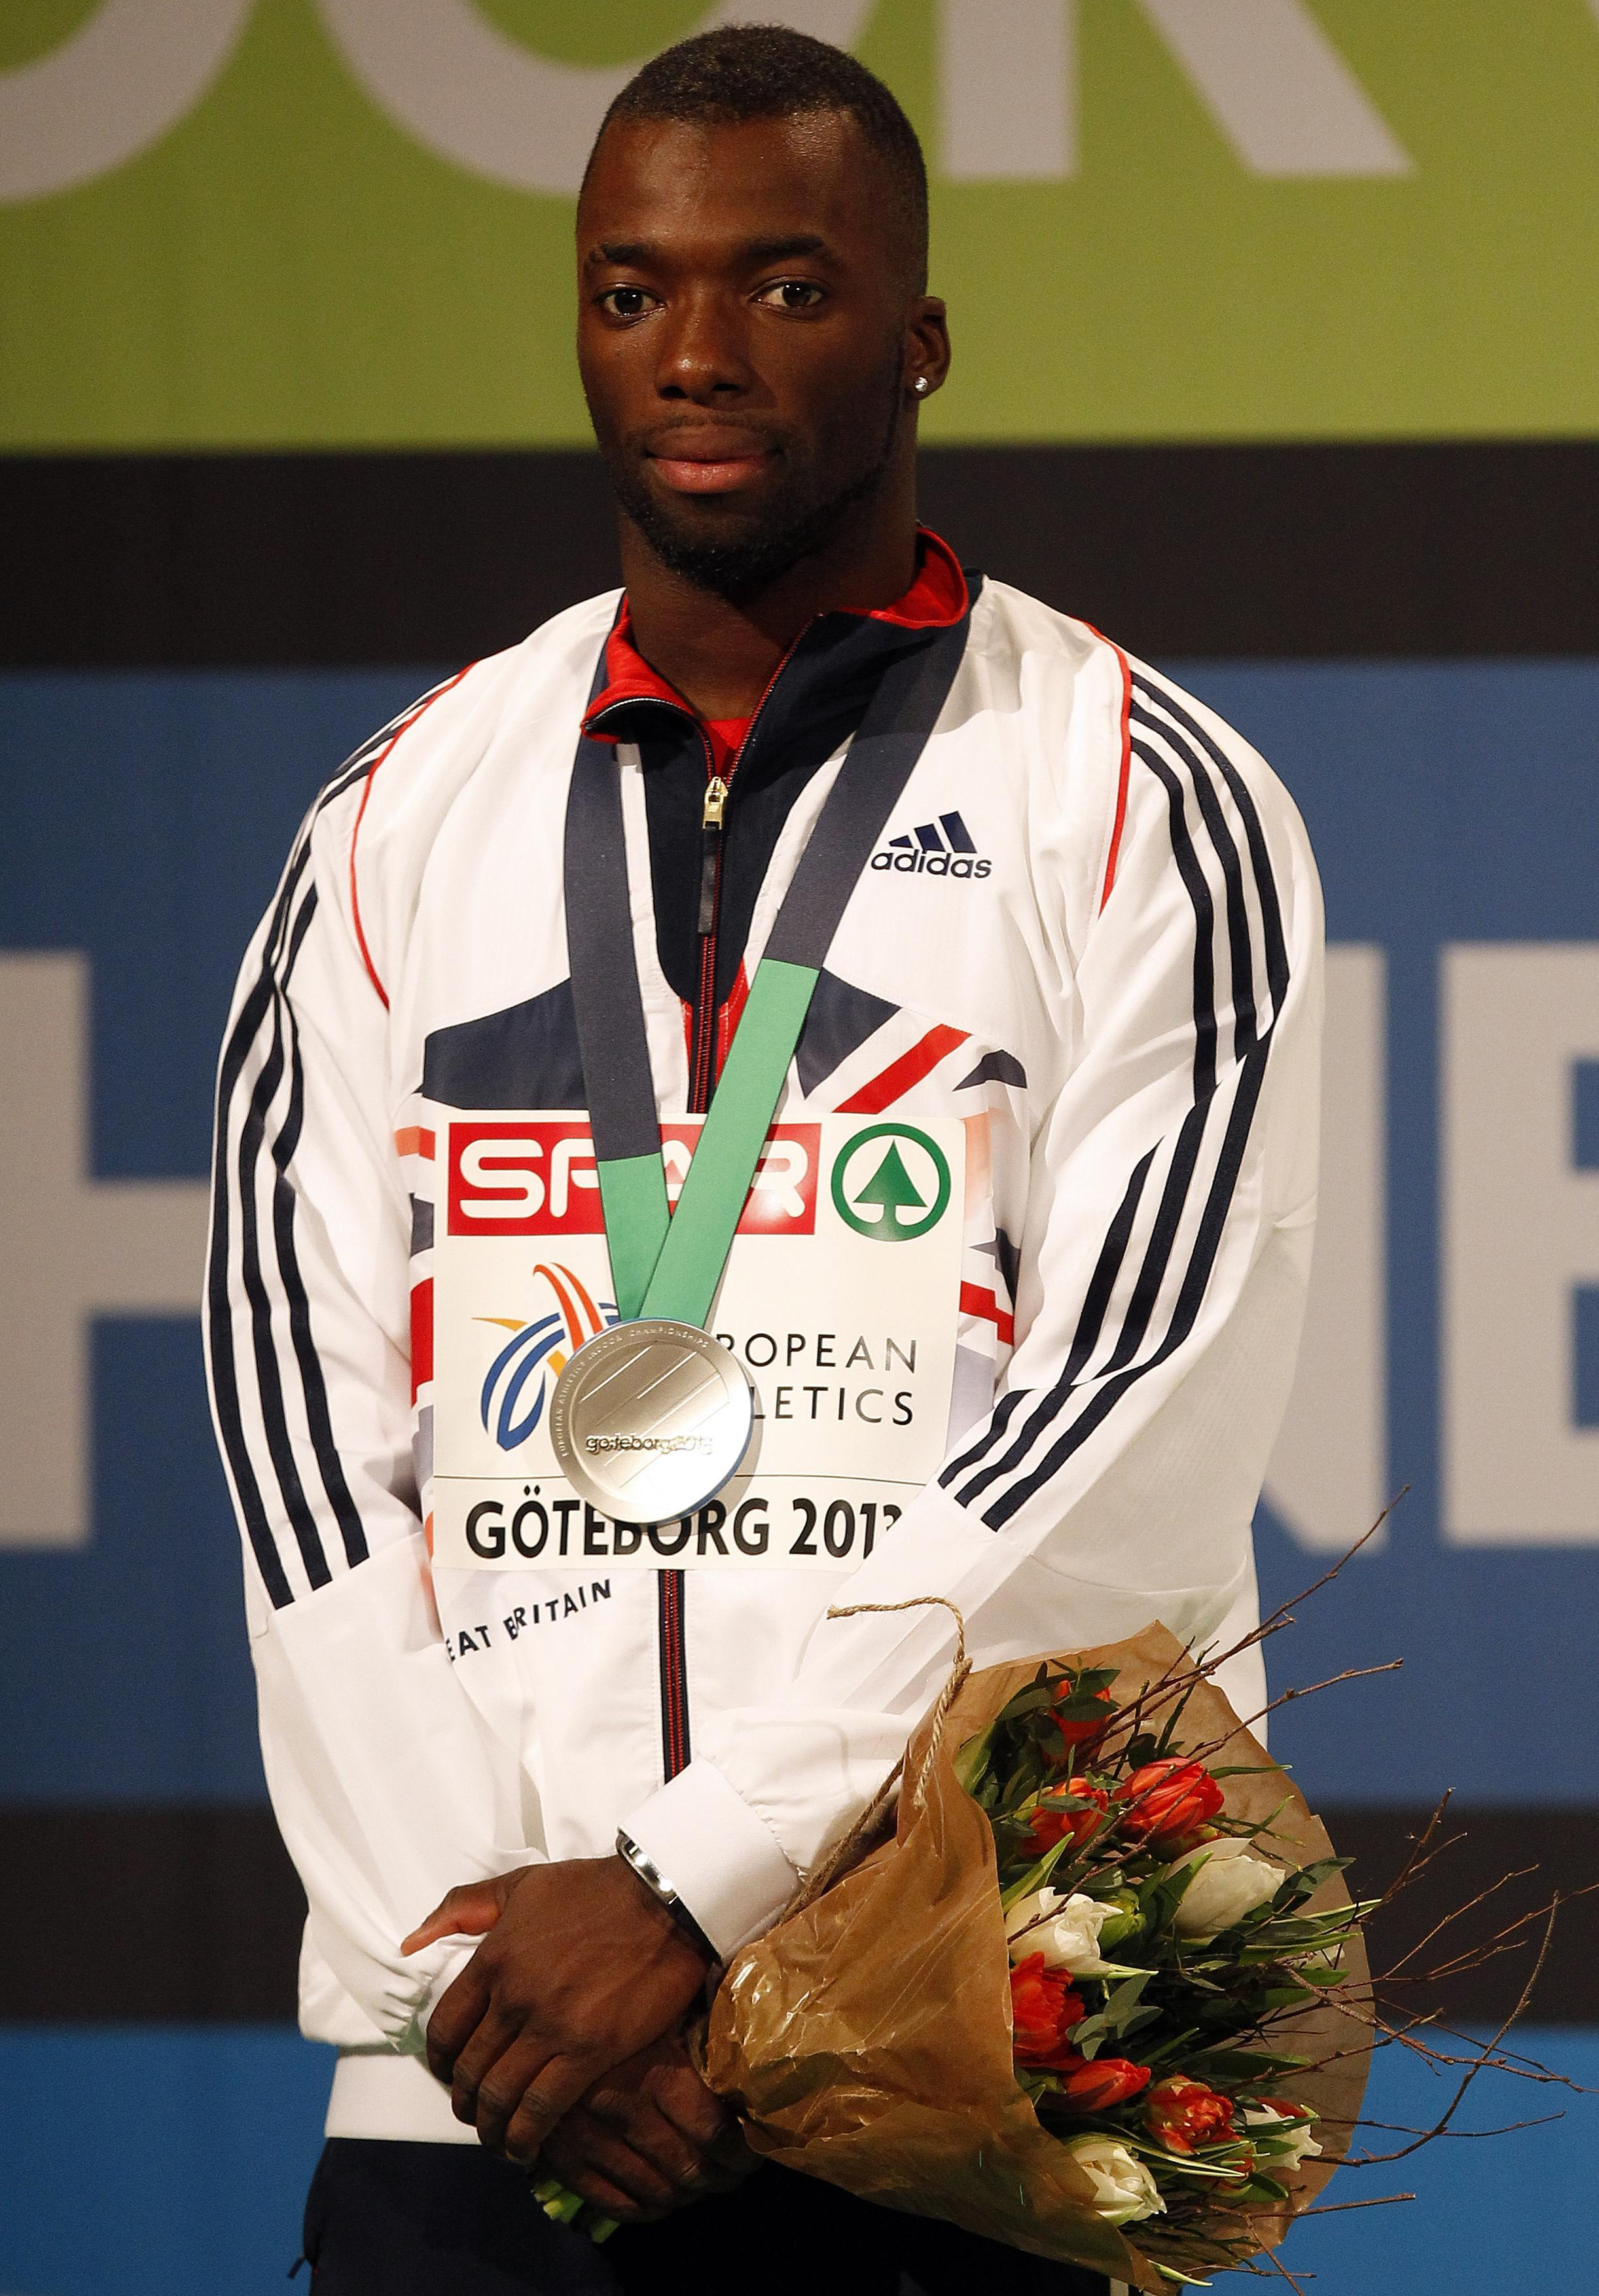 Nigel Levine's sprint career is now in jeopardy after being charged with doping